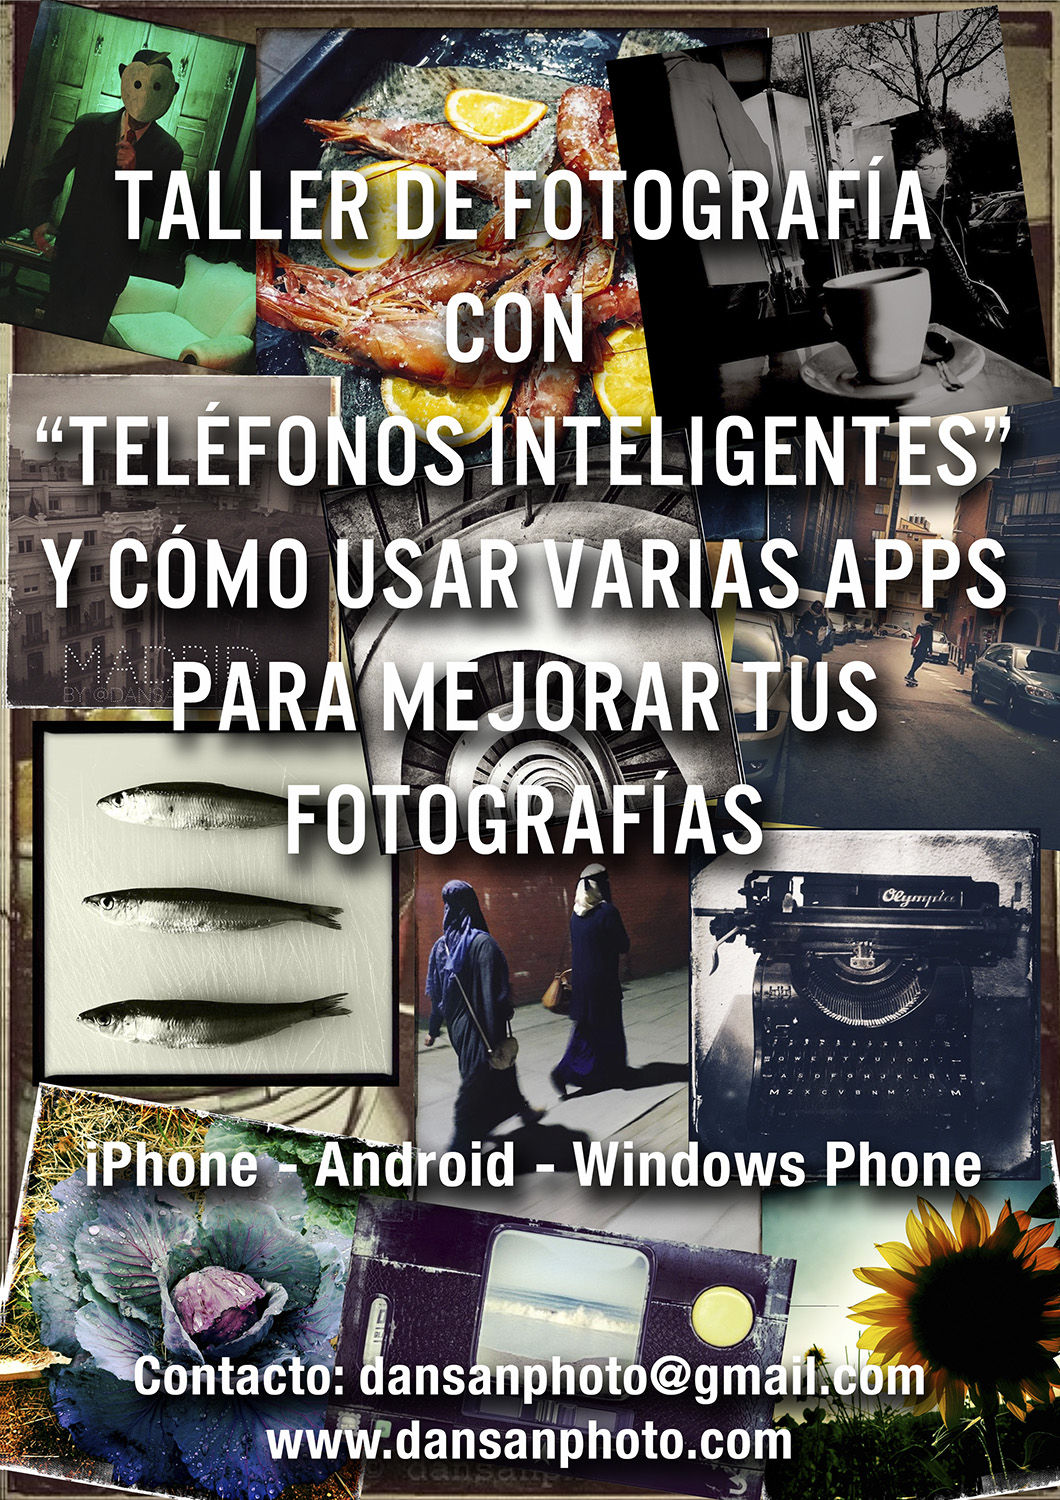 Taller iPhone dansanphoto Android App WindowsPhone